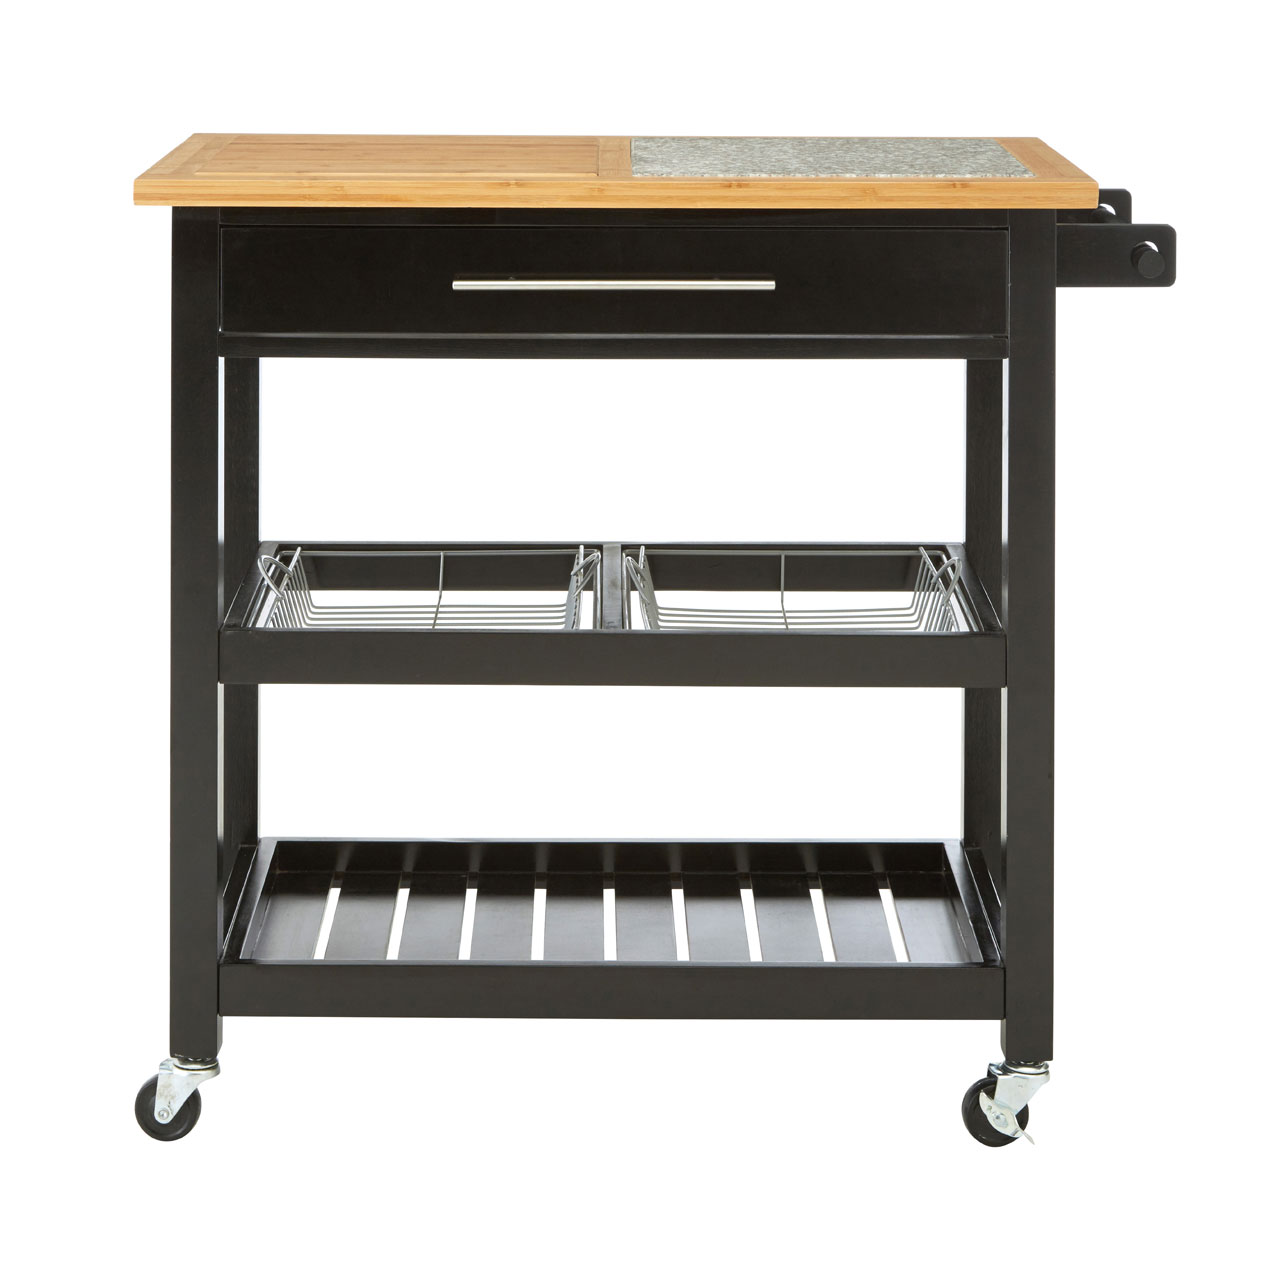 Kitchen Trolley Granite Top Pinewood Frame Storage and Preparation ...